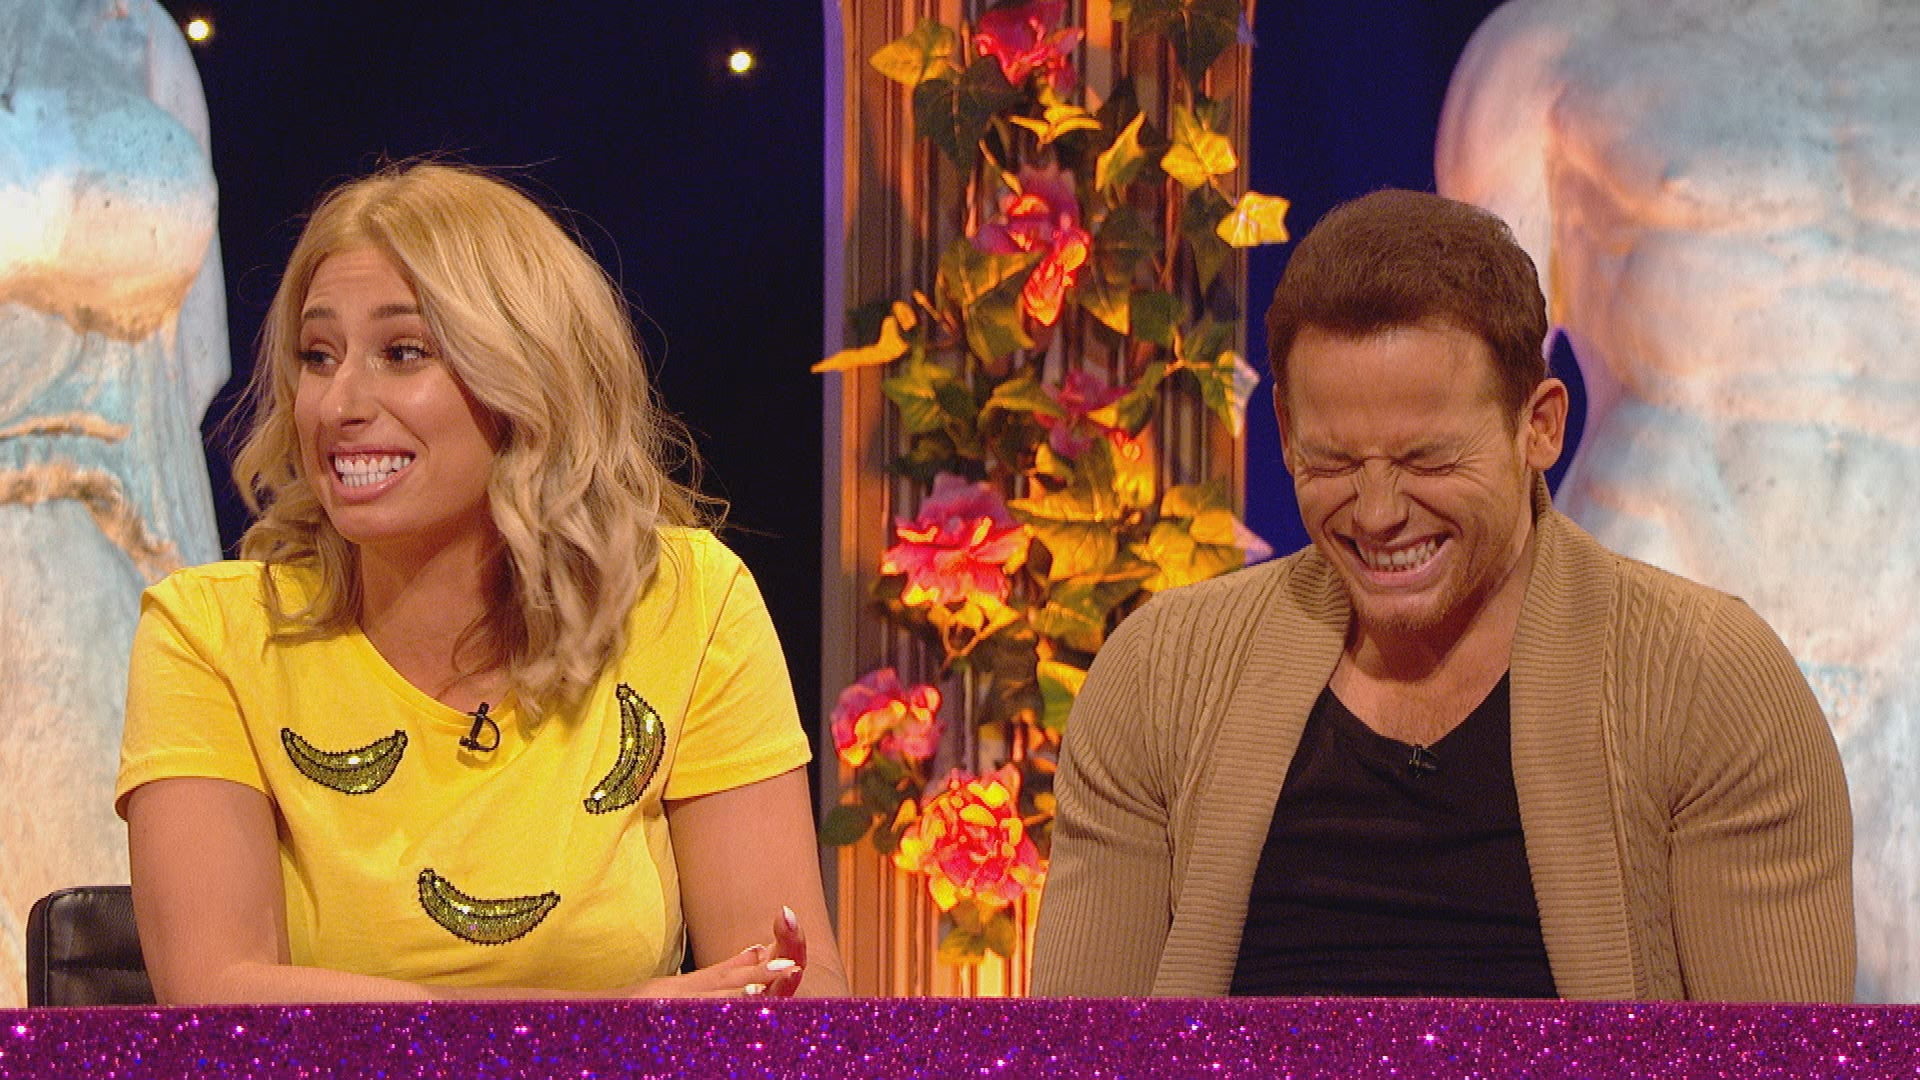 Joe Swash confesses he wees in the bath during romantic nights in with Stacey Solomon on Celebrity Juice